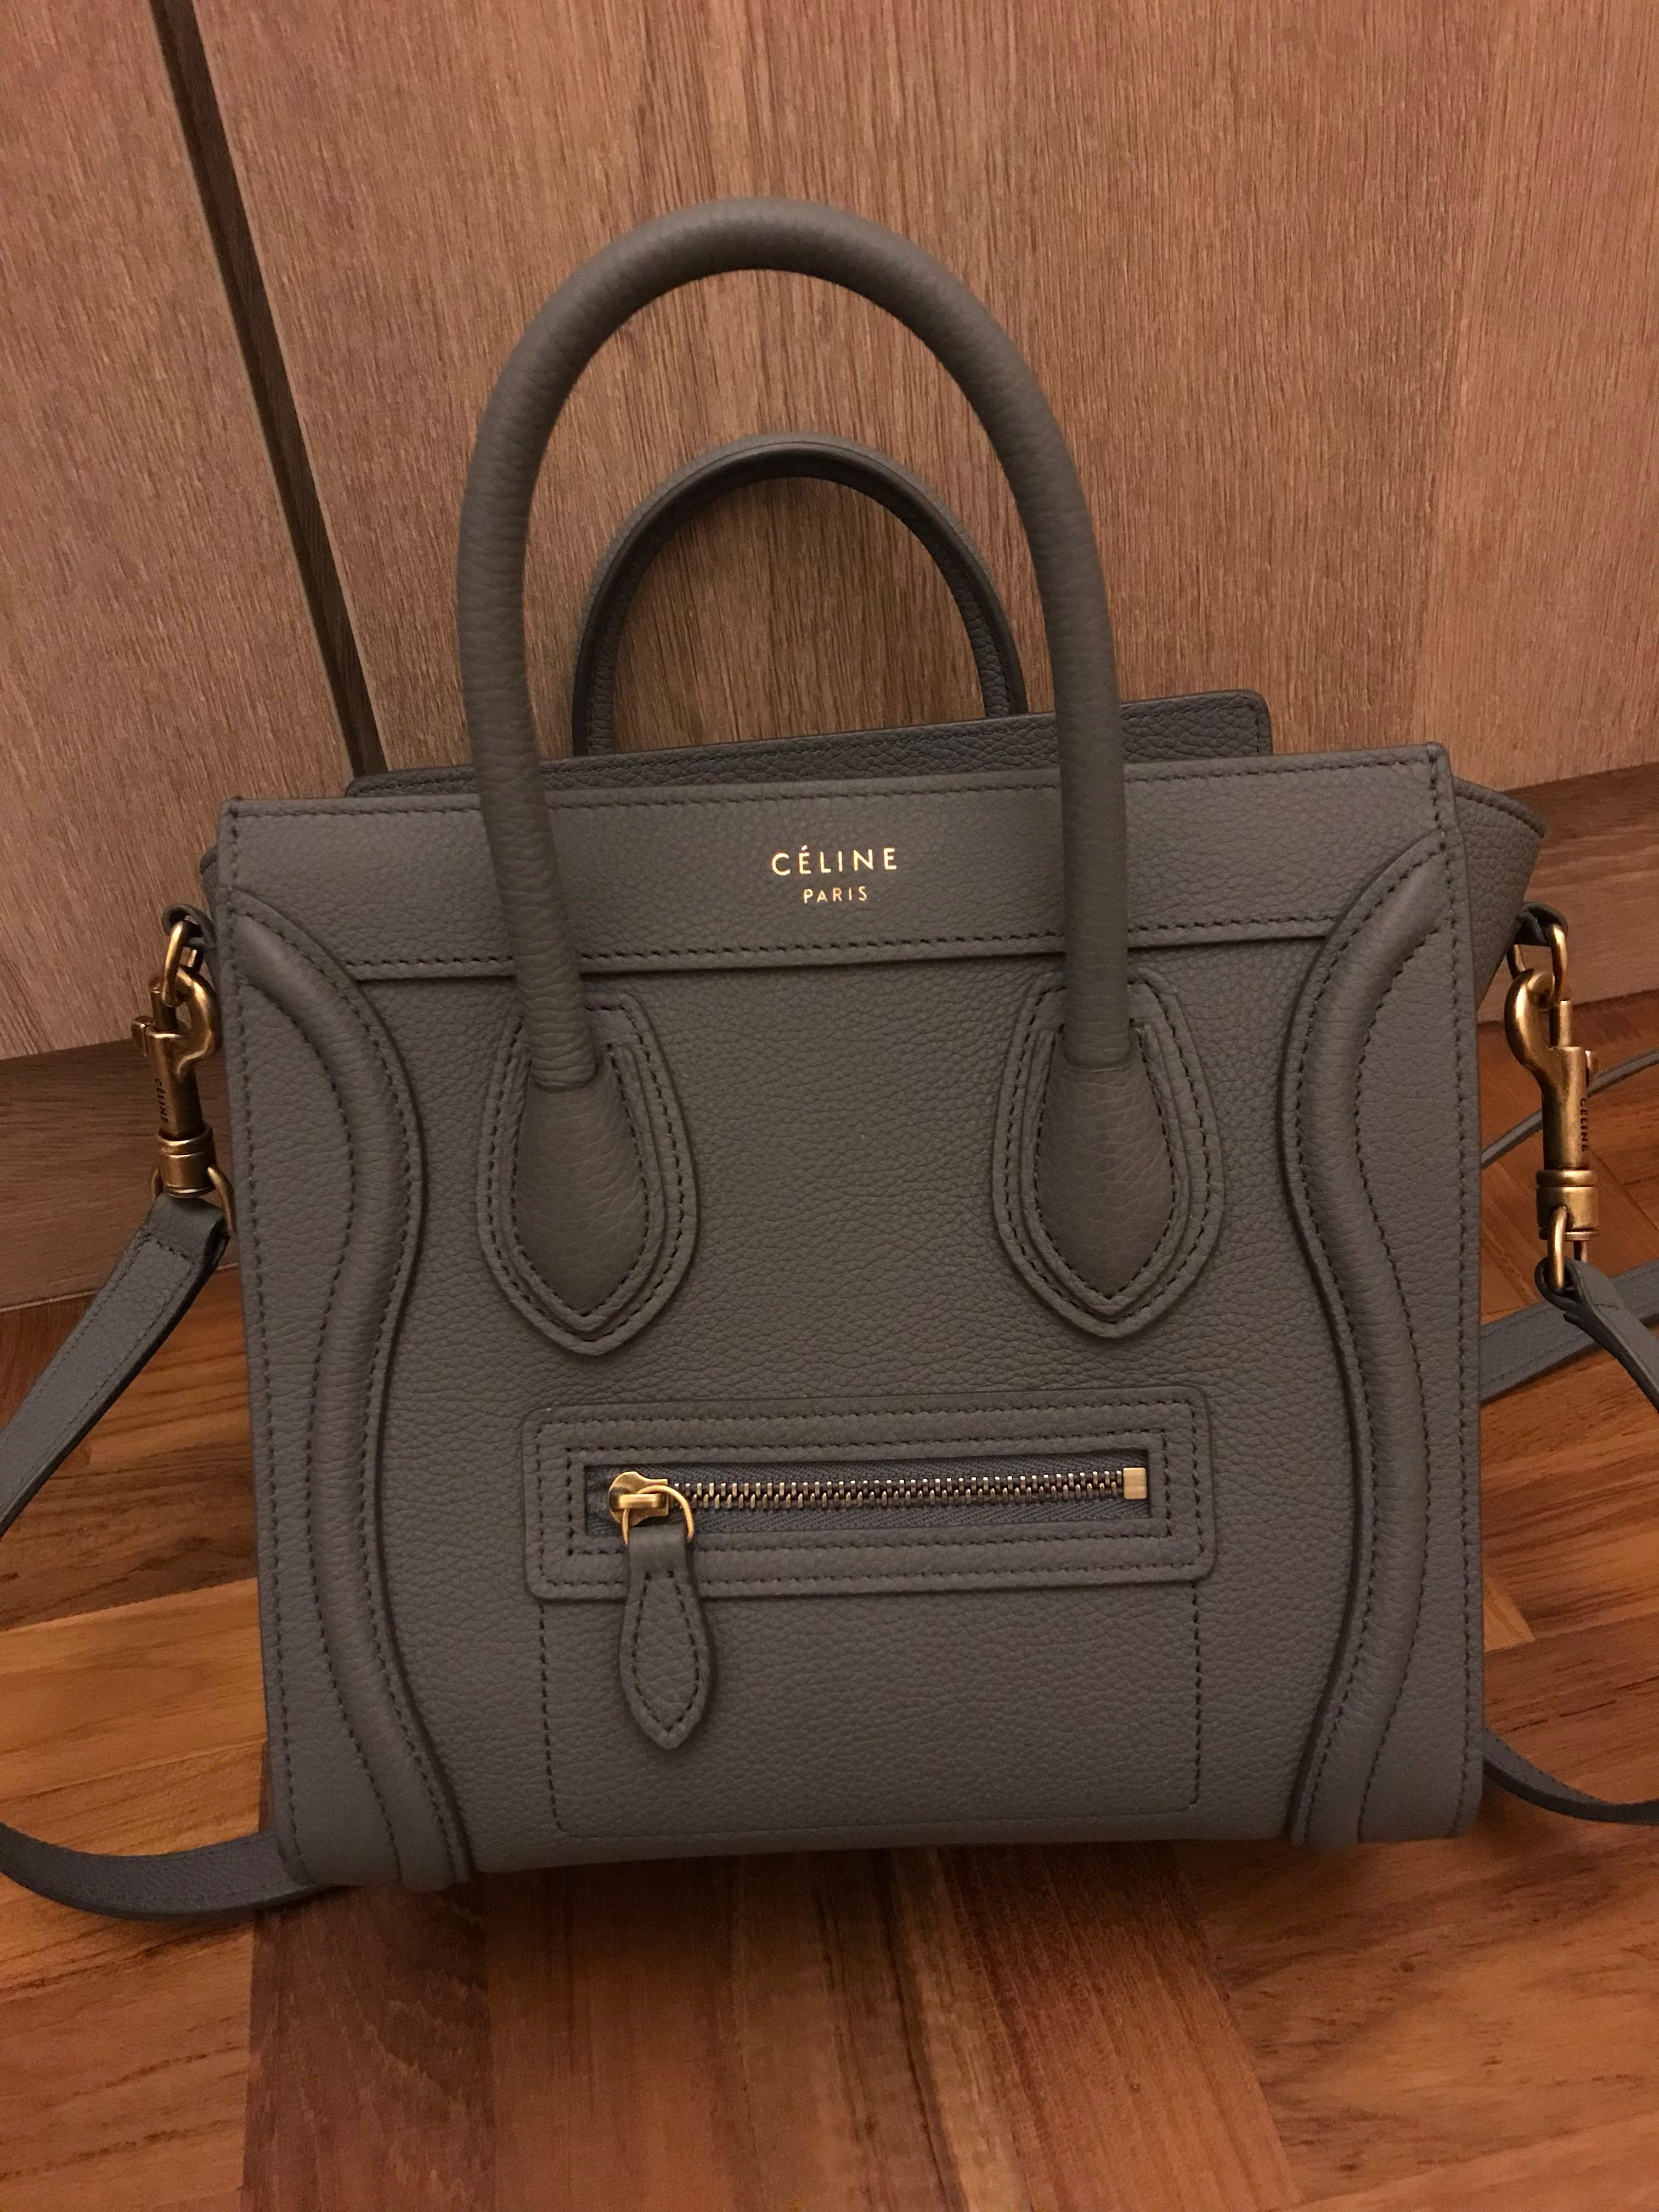 52001991d31a Celine Grained Calfskin Nano Luggage Kohl, Luxury, Bags & Wallets, Handbags  on Carousell